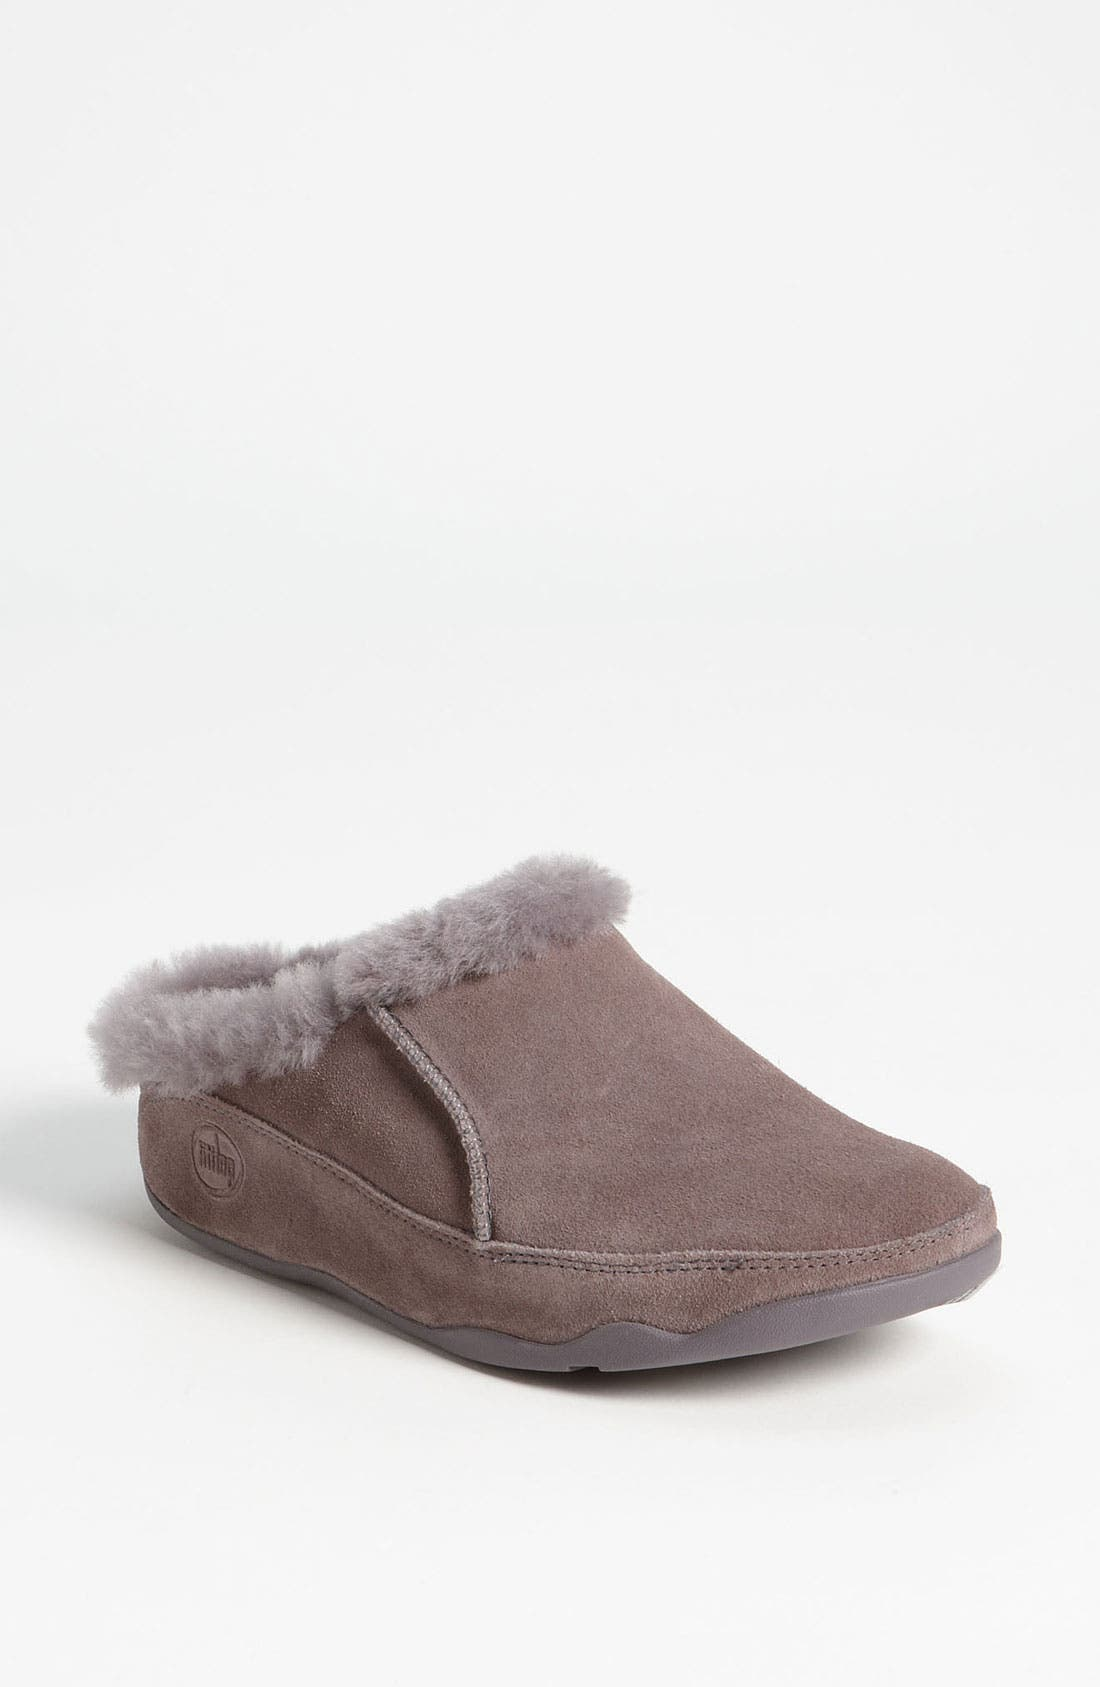 Main Image - FitFlop 'Lounge Deluxe' Mule